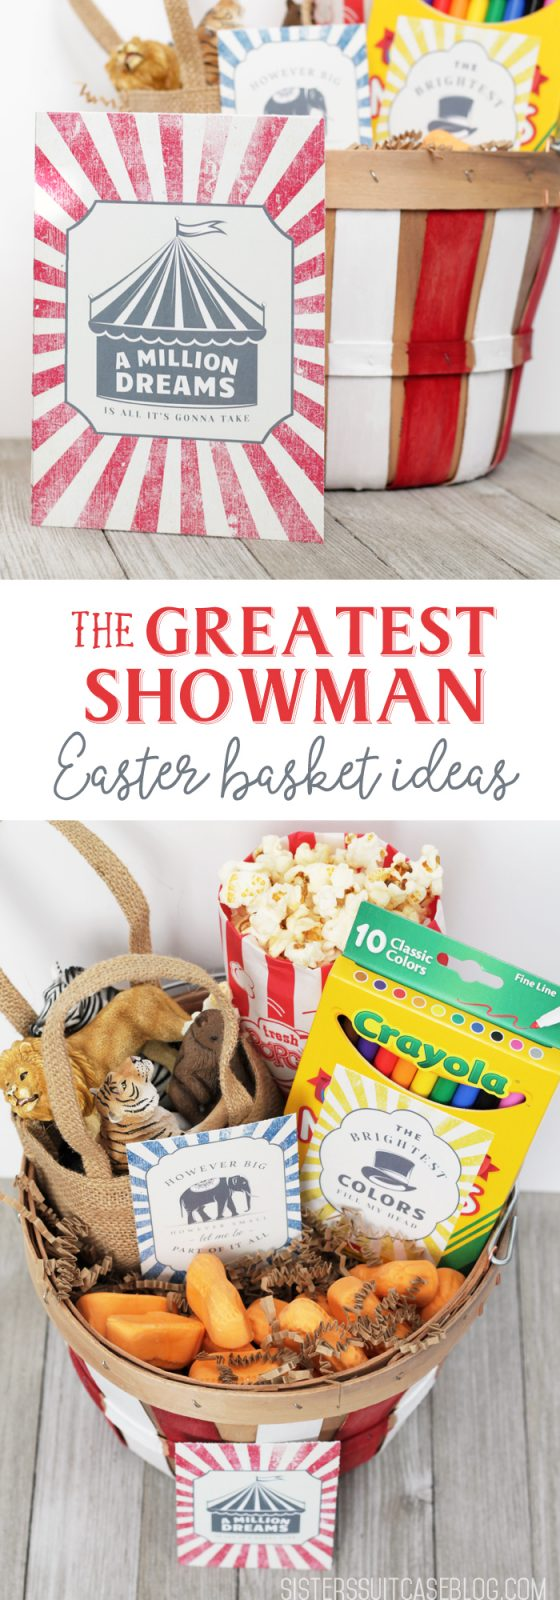 Greatest Showman Easter Basket ideas